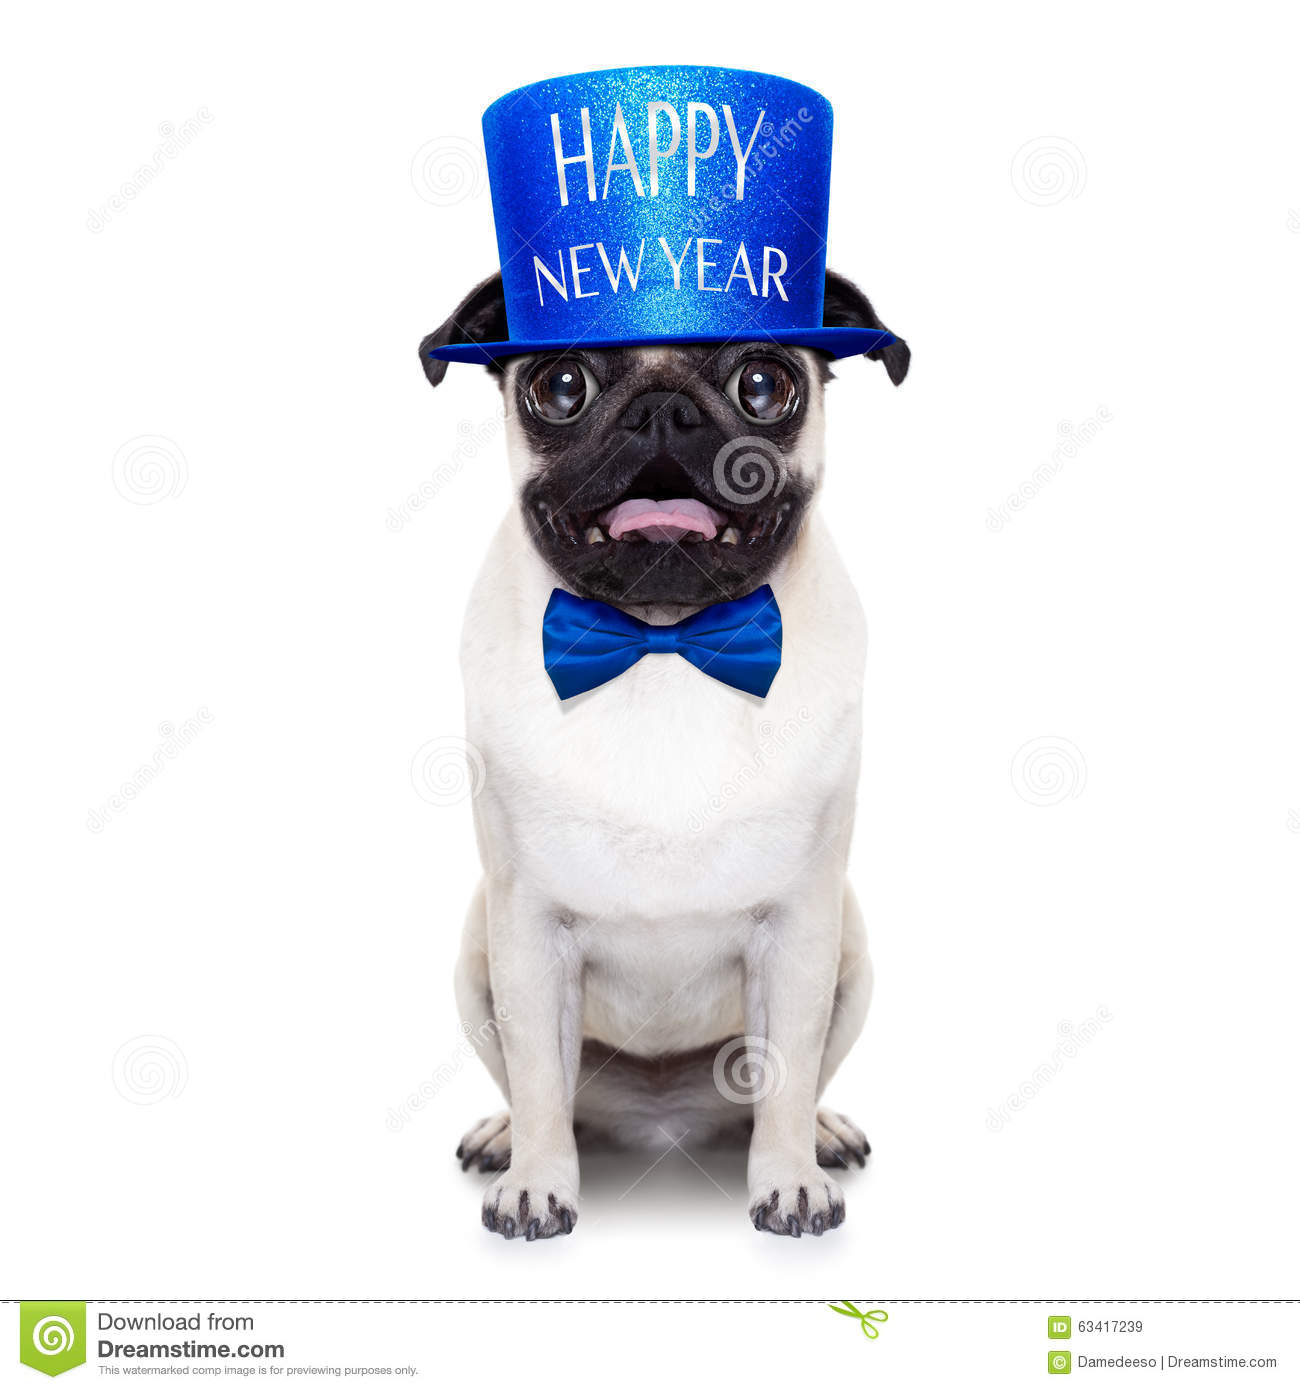 Happy new year dog stock image. Image of cocktail, funny ...